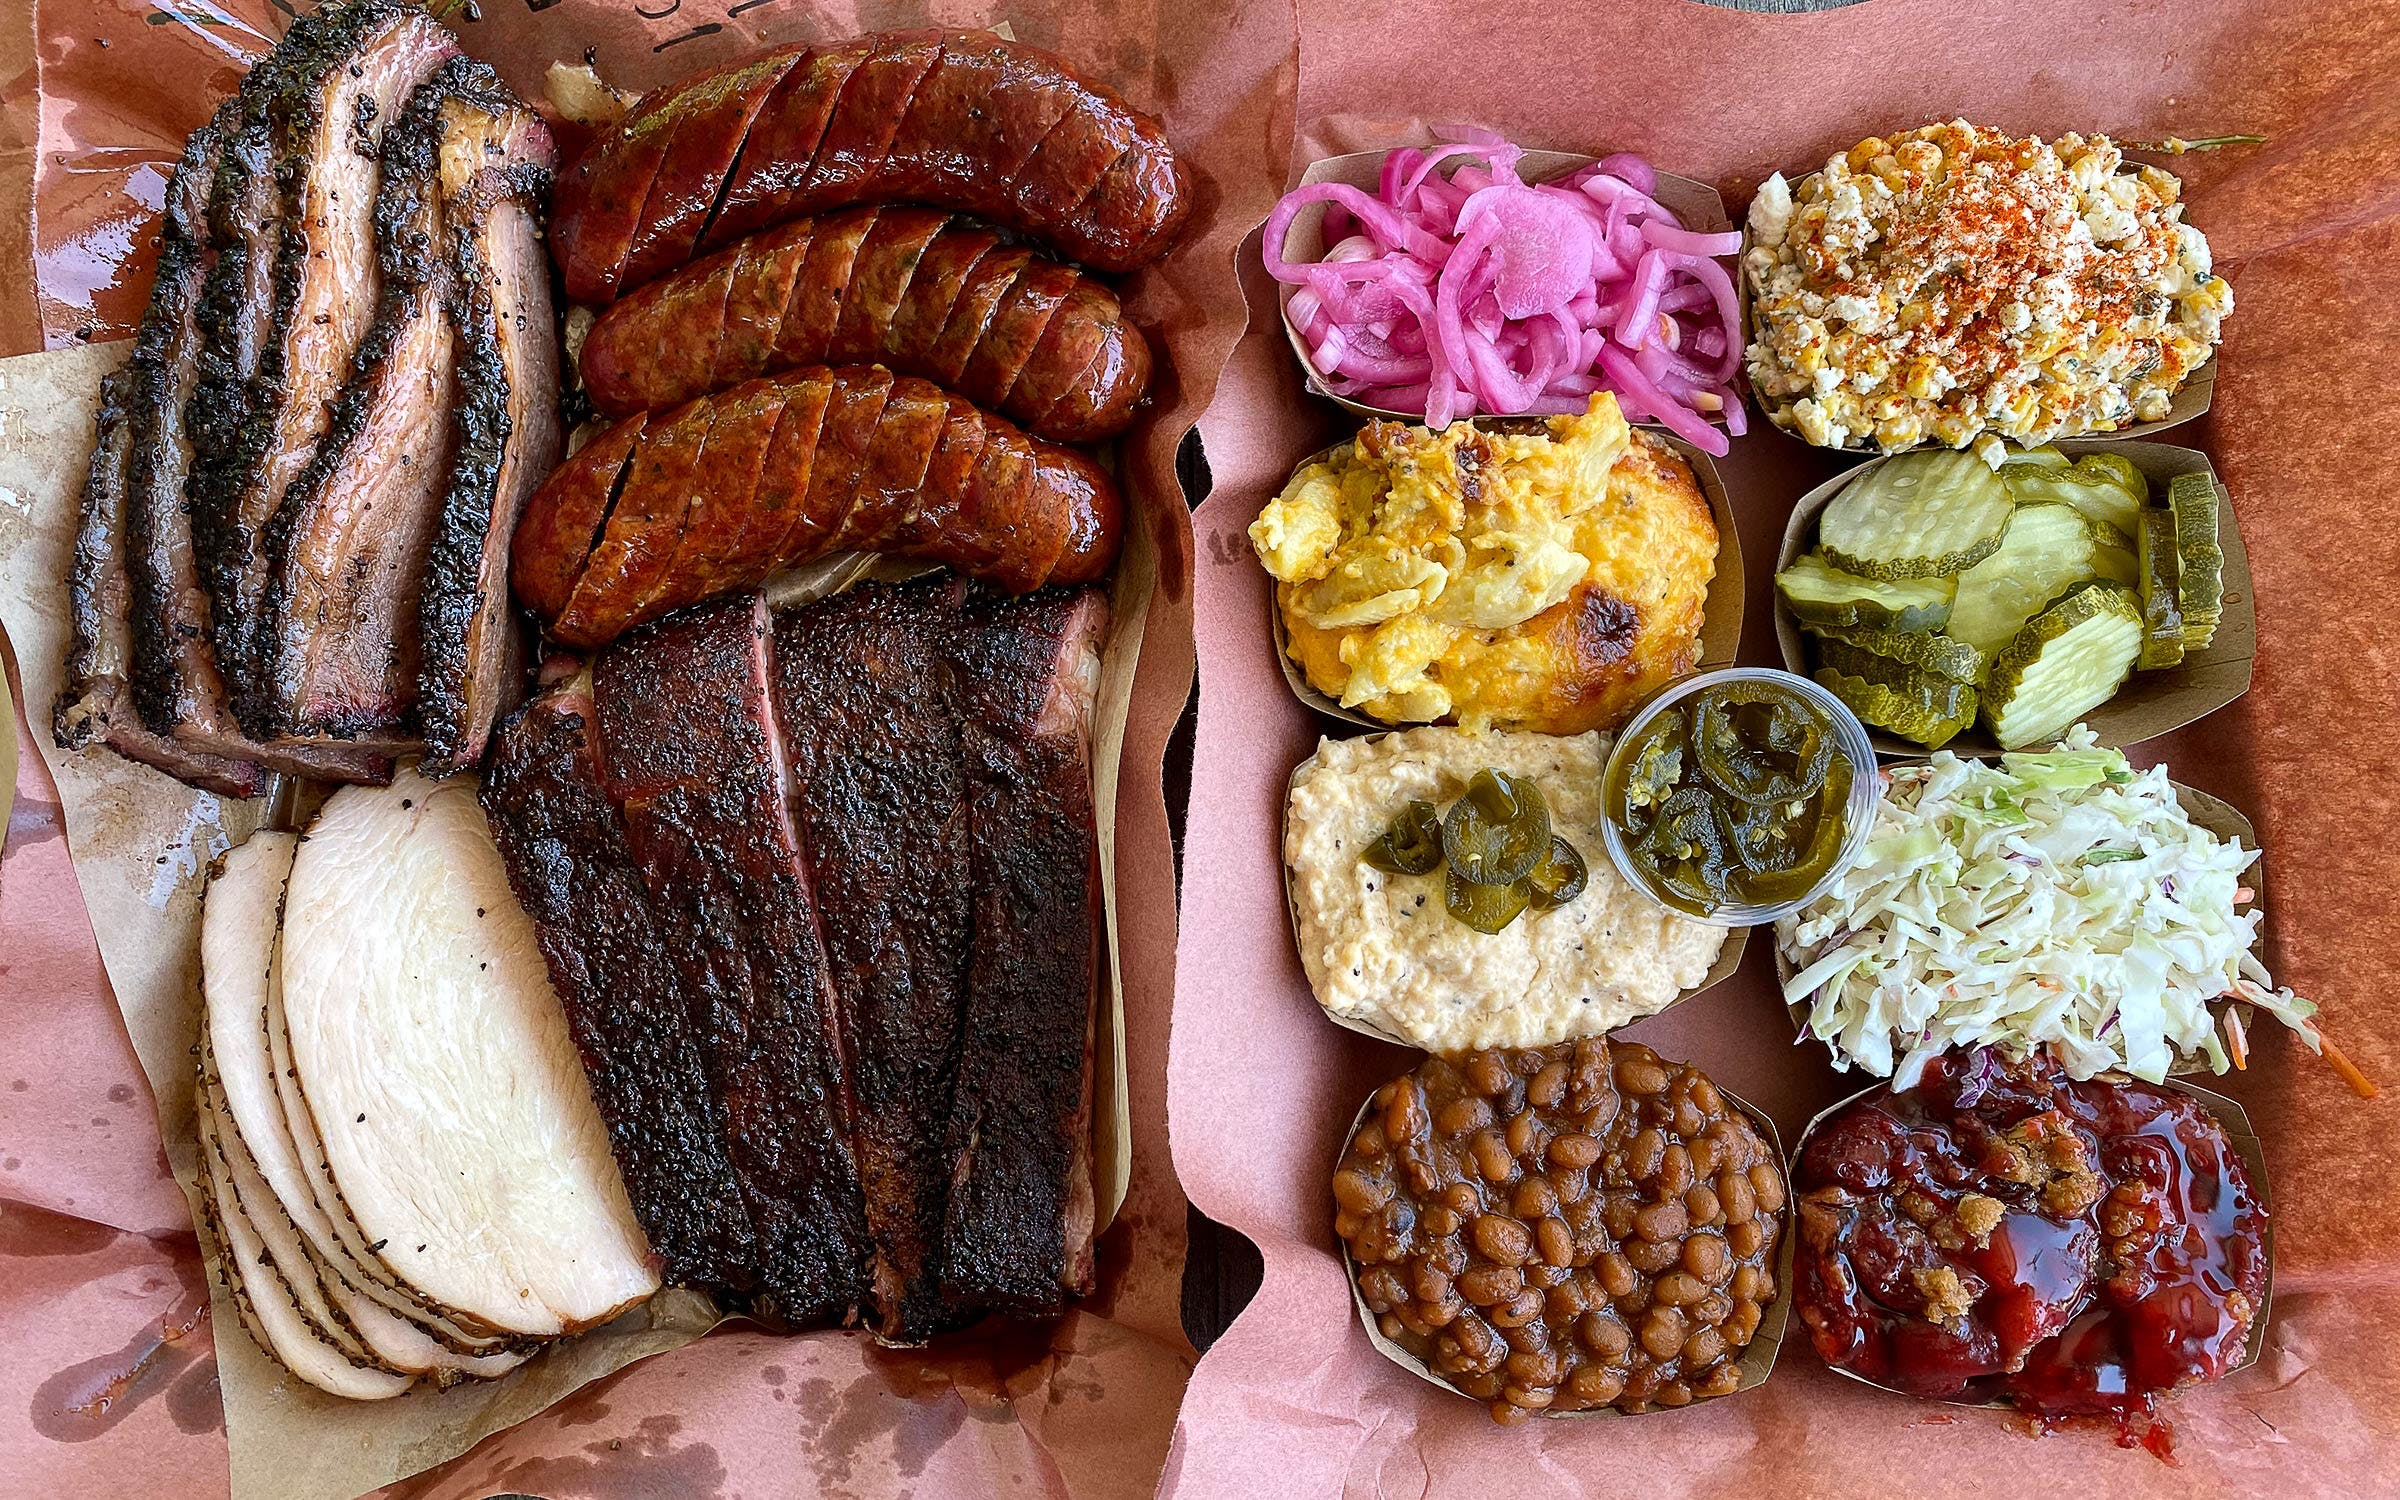 Spread of food at Jon G's Barbecue